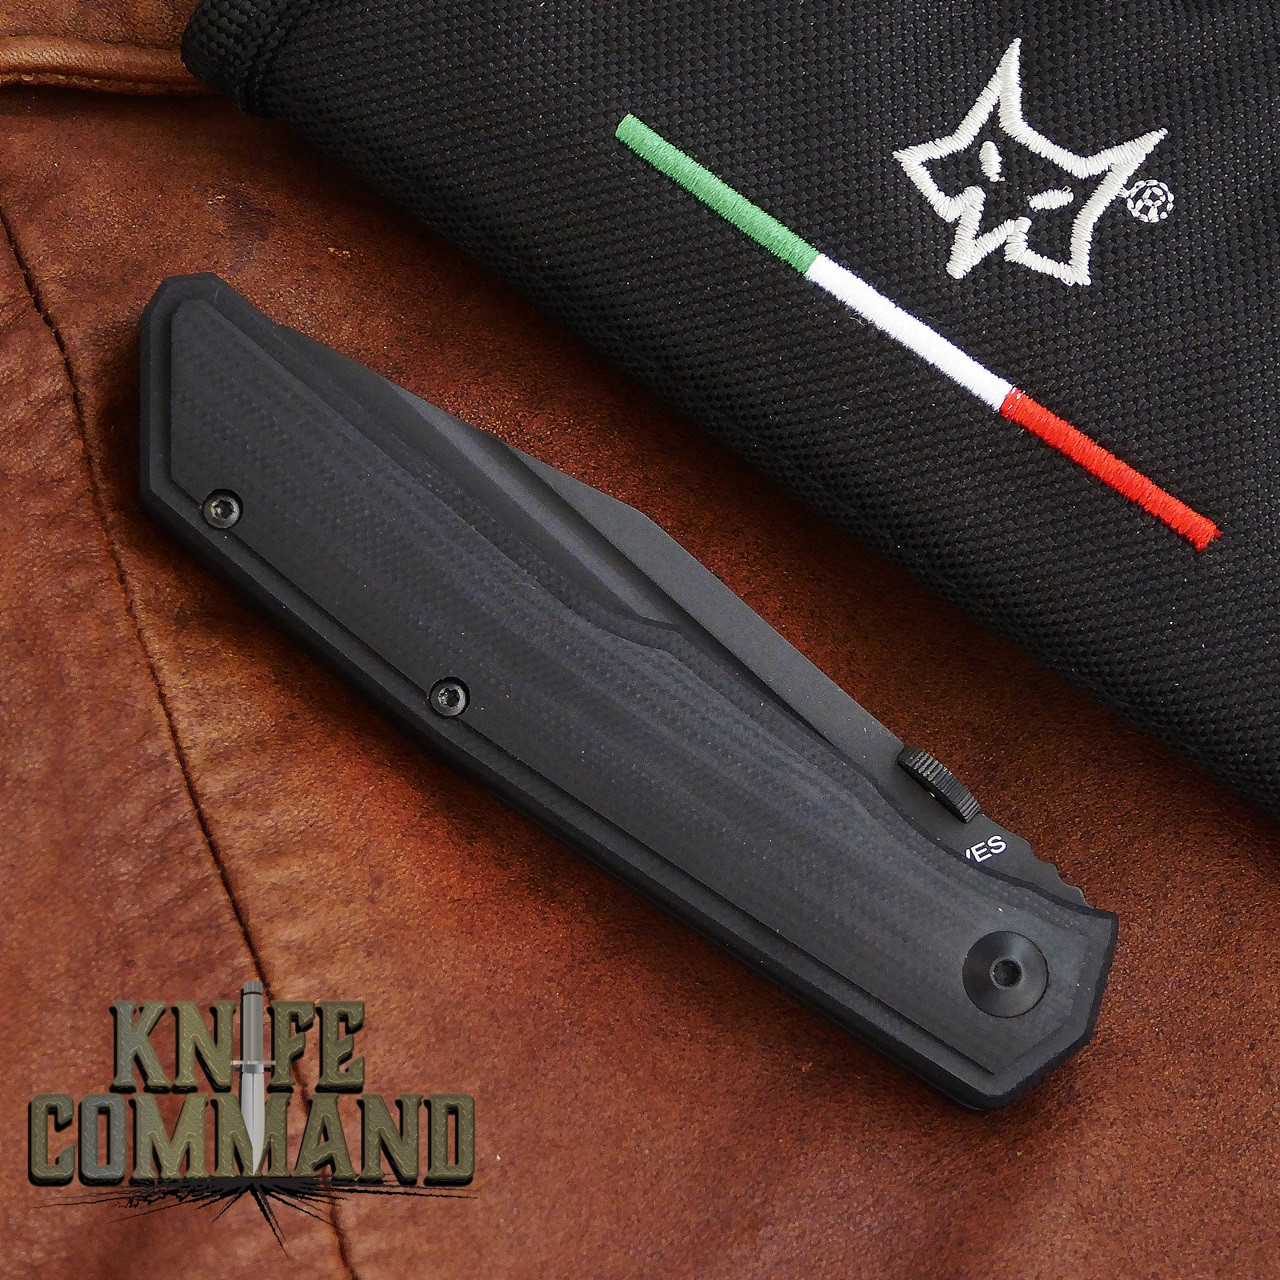 Fox Knives Bob Terzuola Tactical Black G-10 Liner Lock Pocket Knife FX-515.  Zippered pouch included.